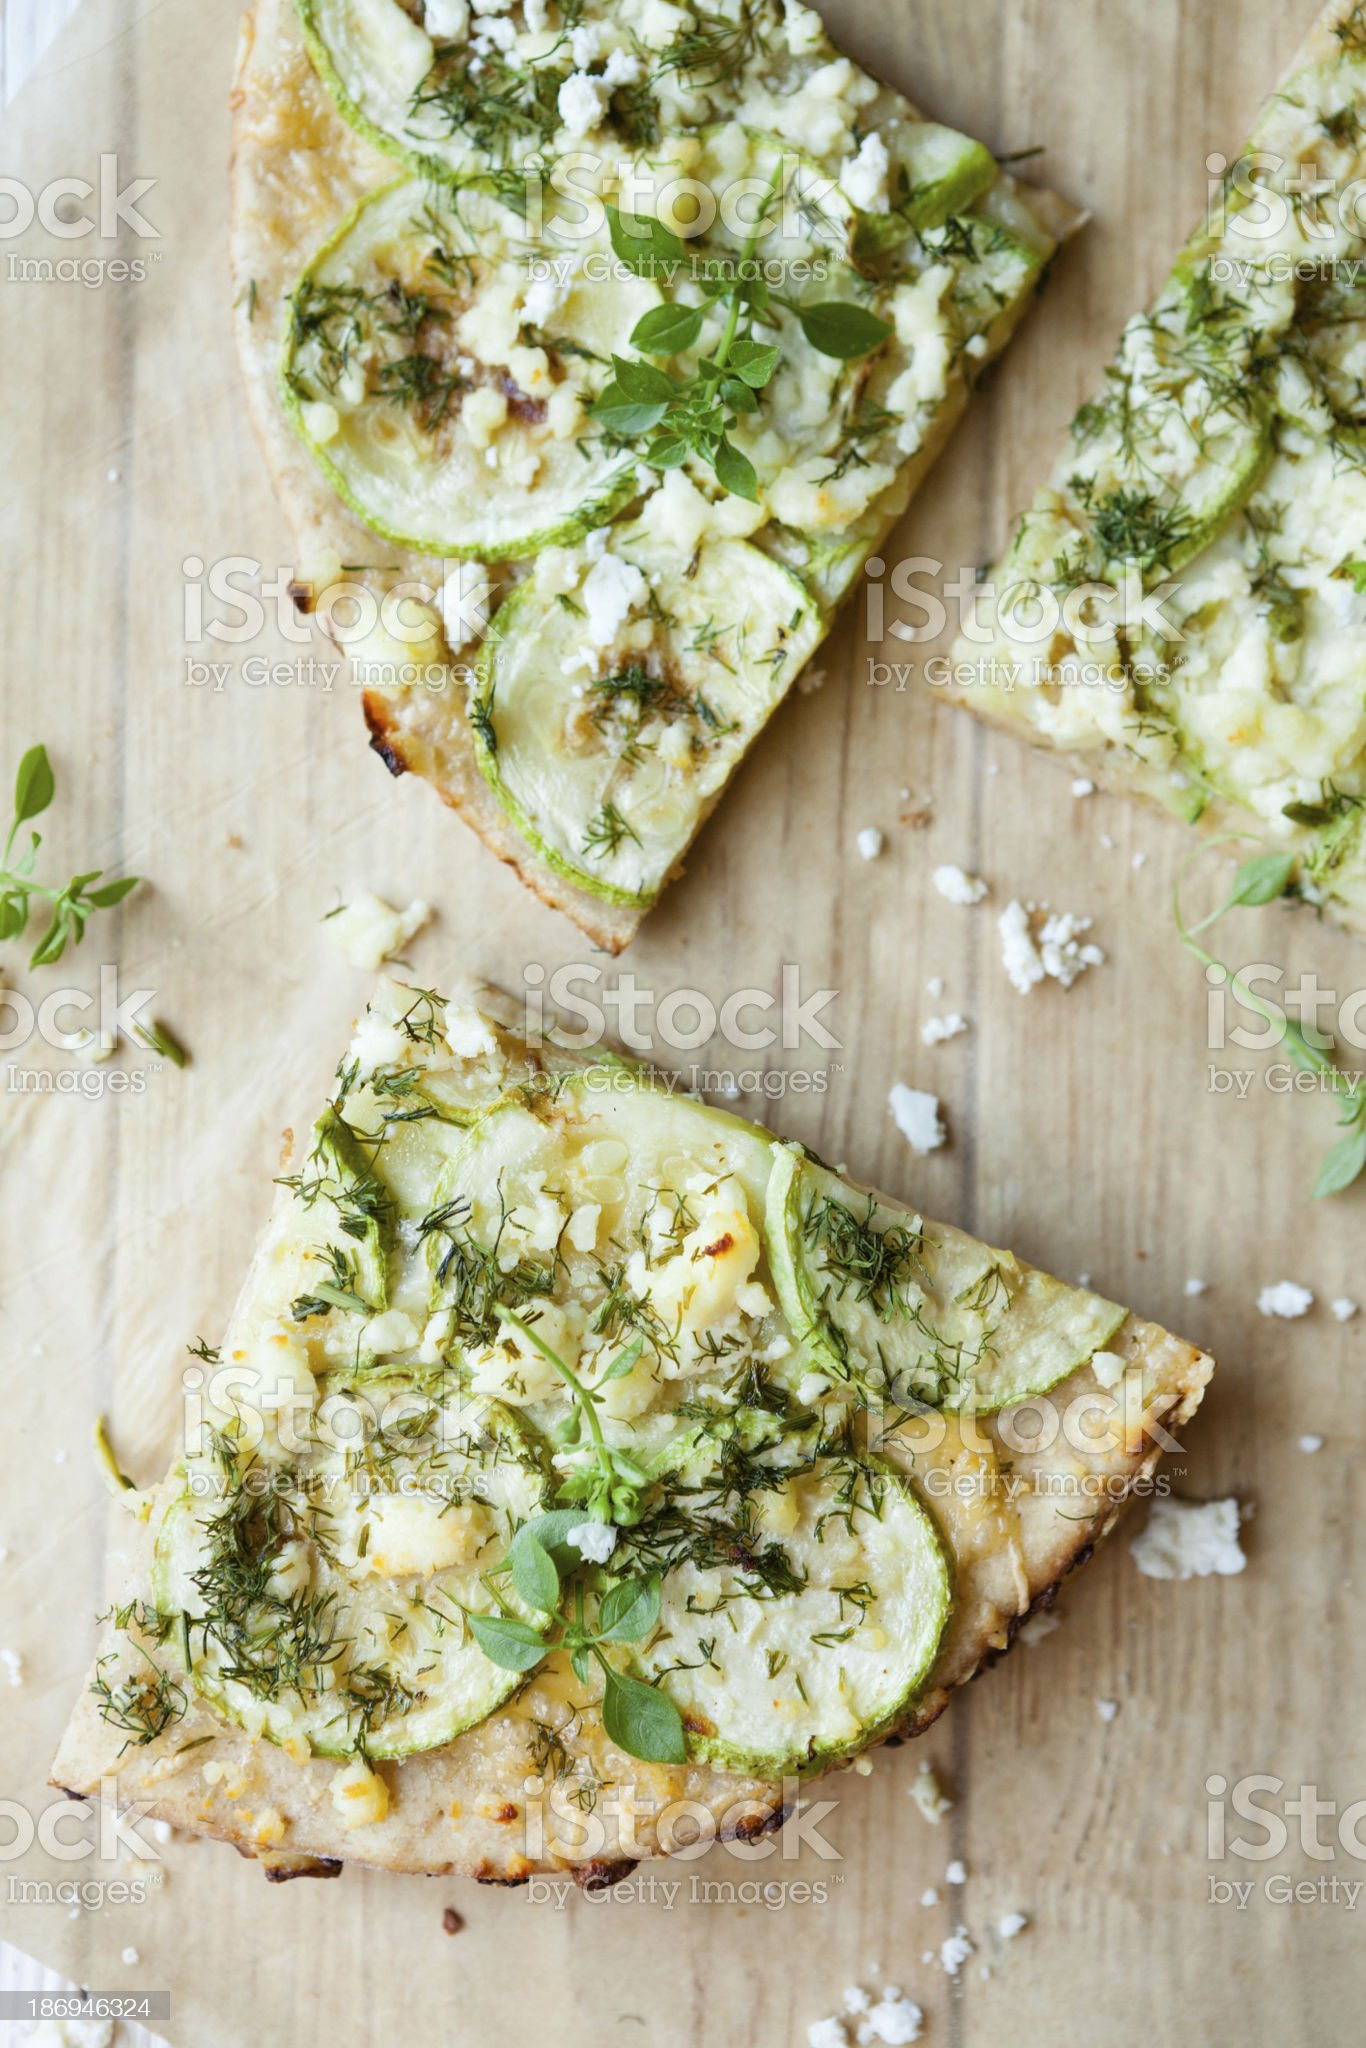 slices of vegetable pizza with cheese royalty-free stock photo